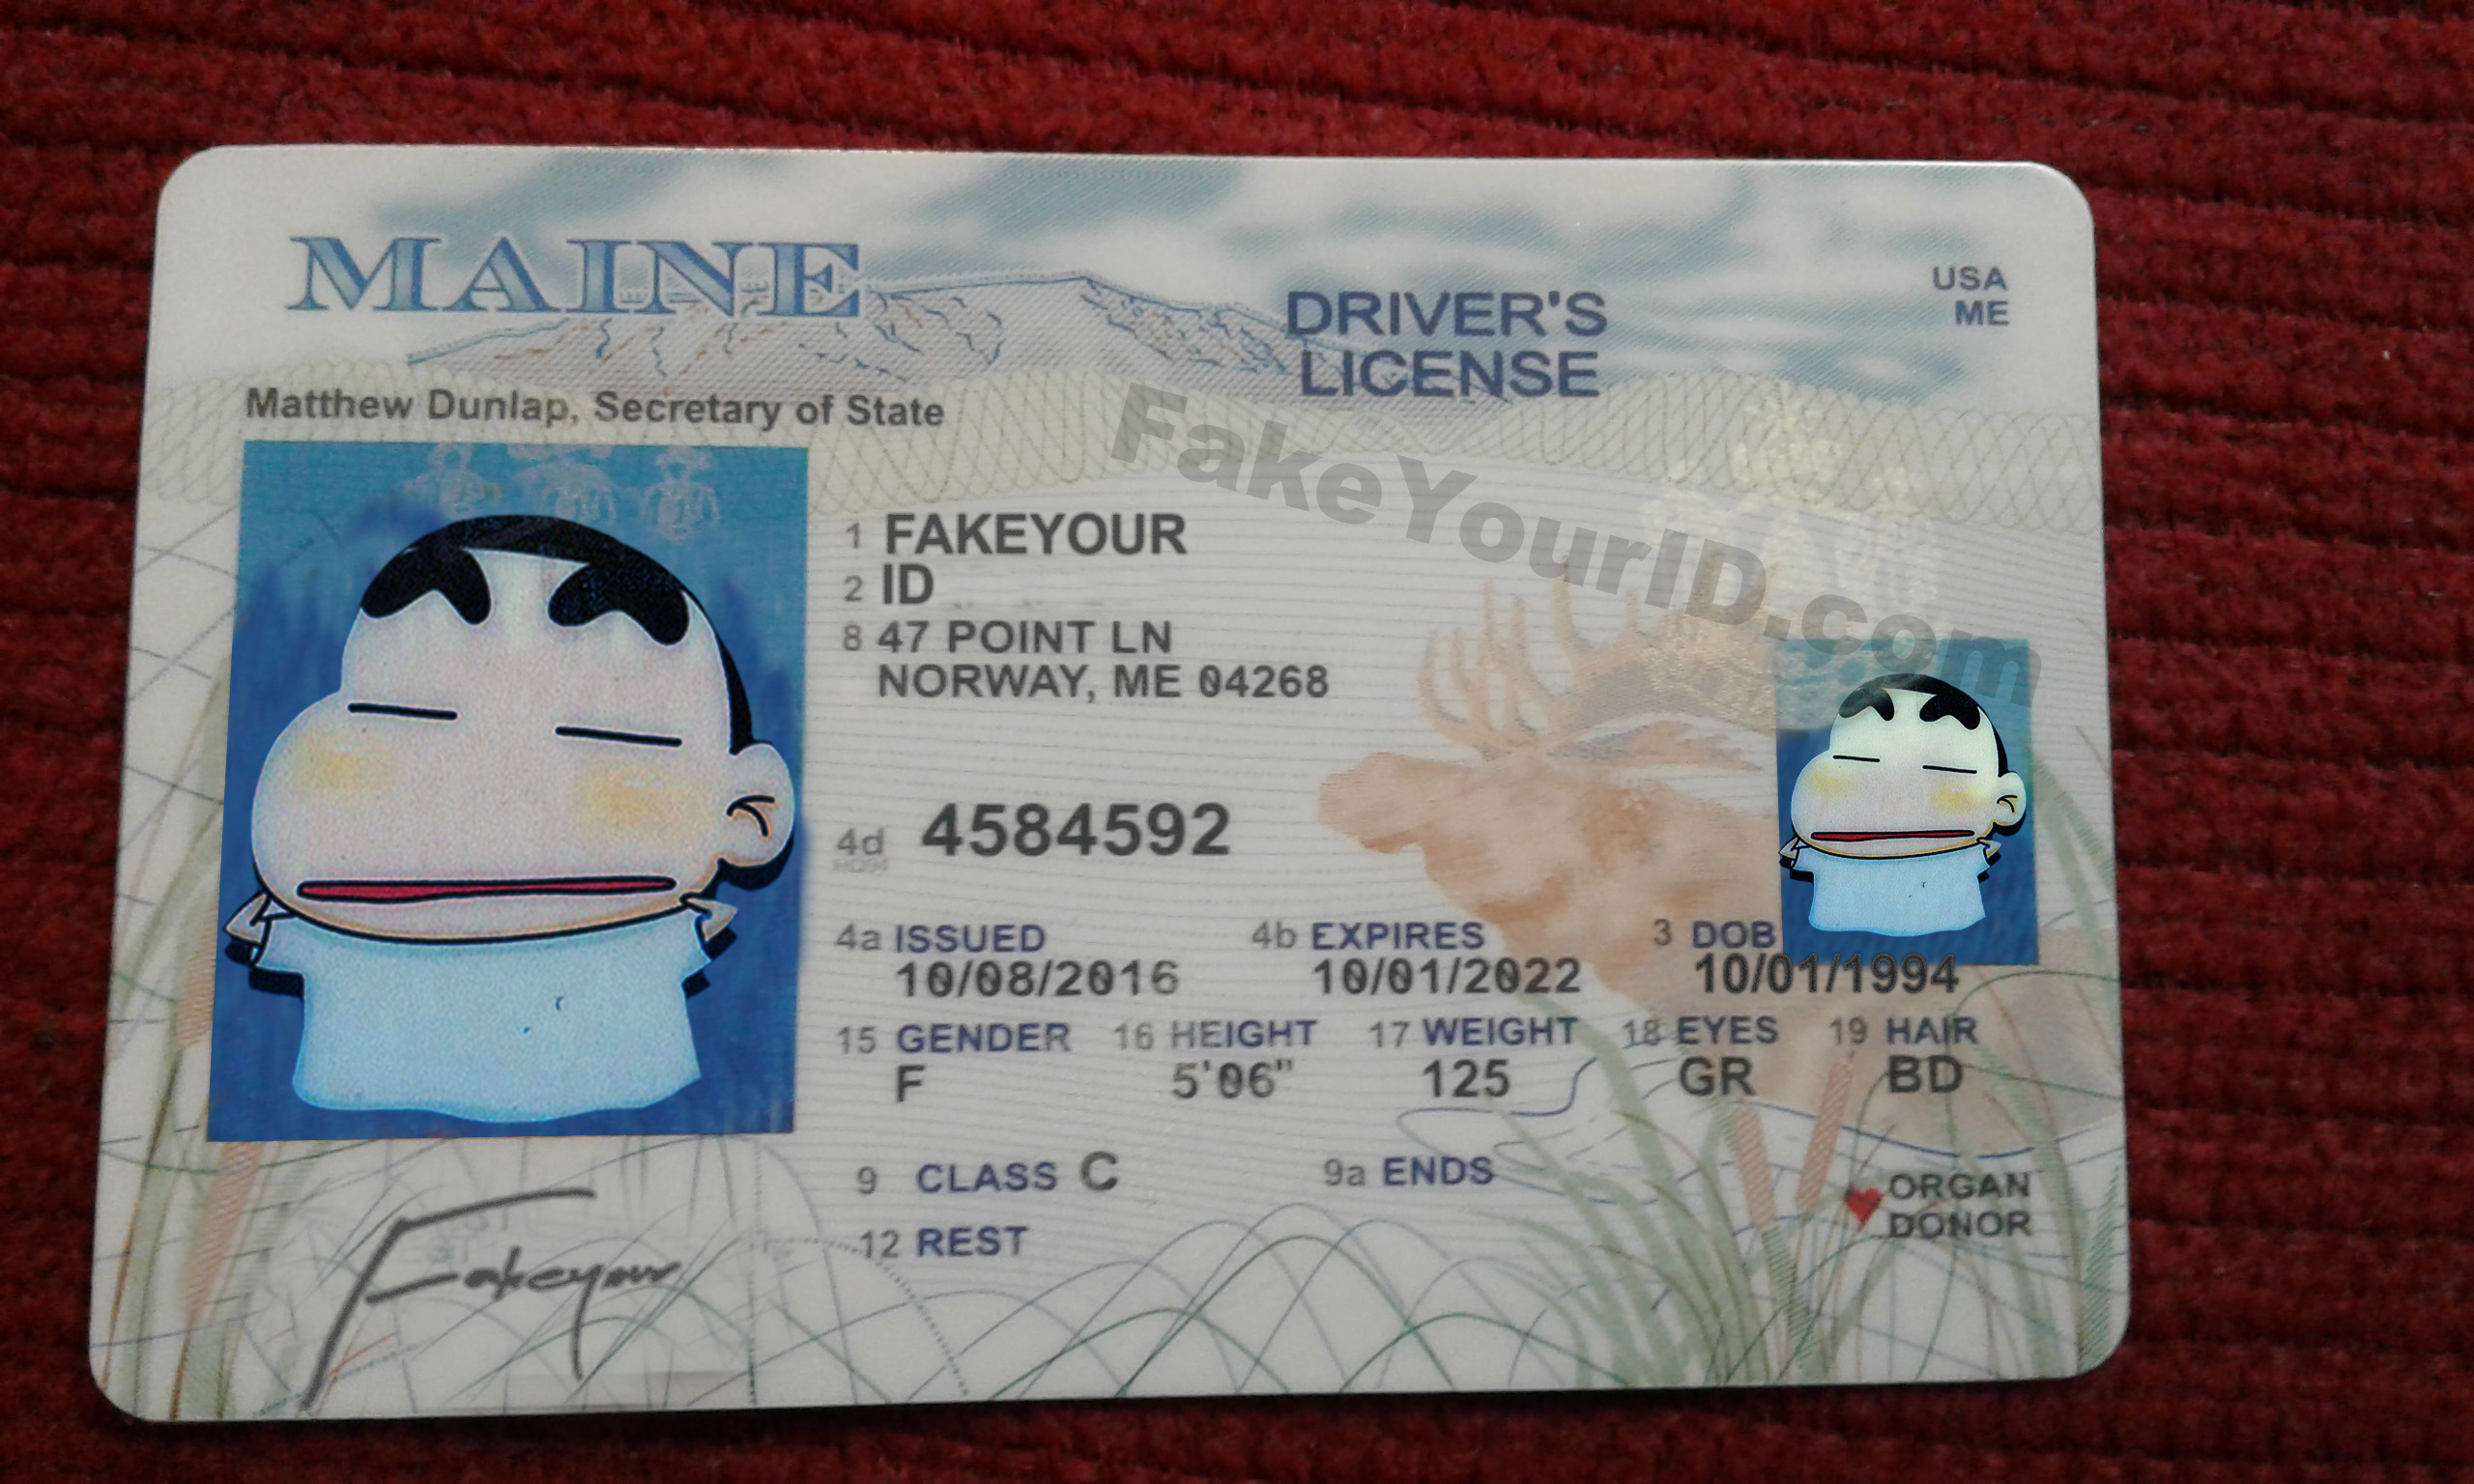 Maine Scannable Ids Id We Make - Buy Premium Fake